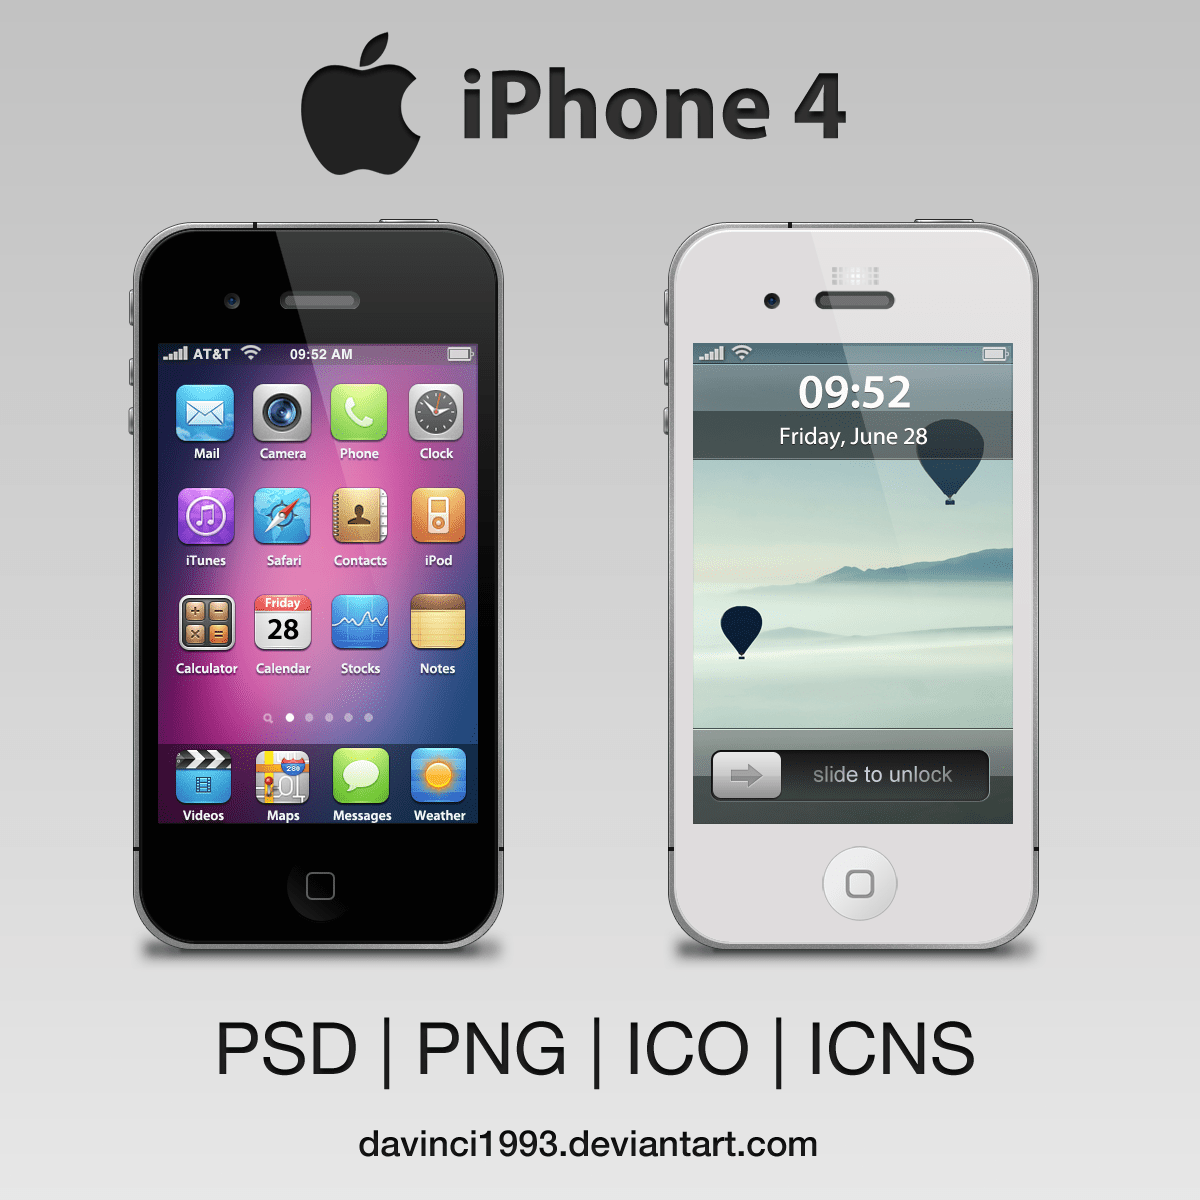 Free Wallpaper For Iphone 5s Apple Iphone 4 Psd Png Ico Icns By Davinci1993 On